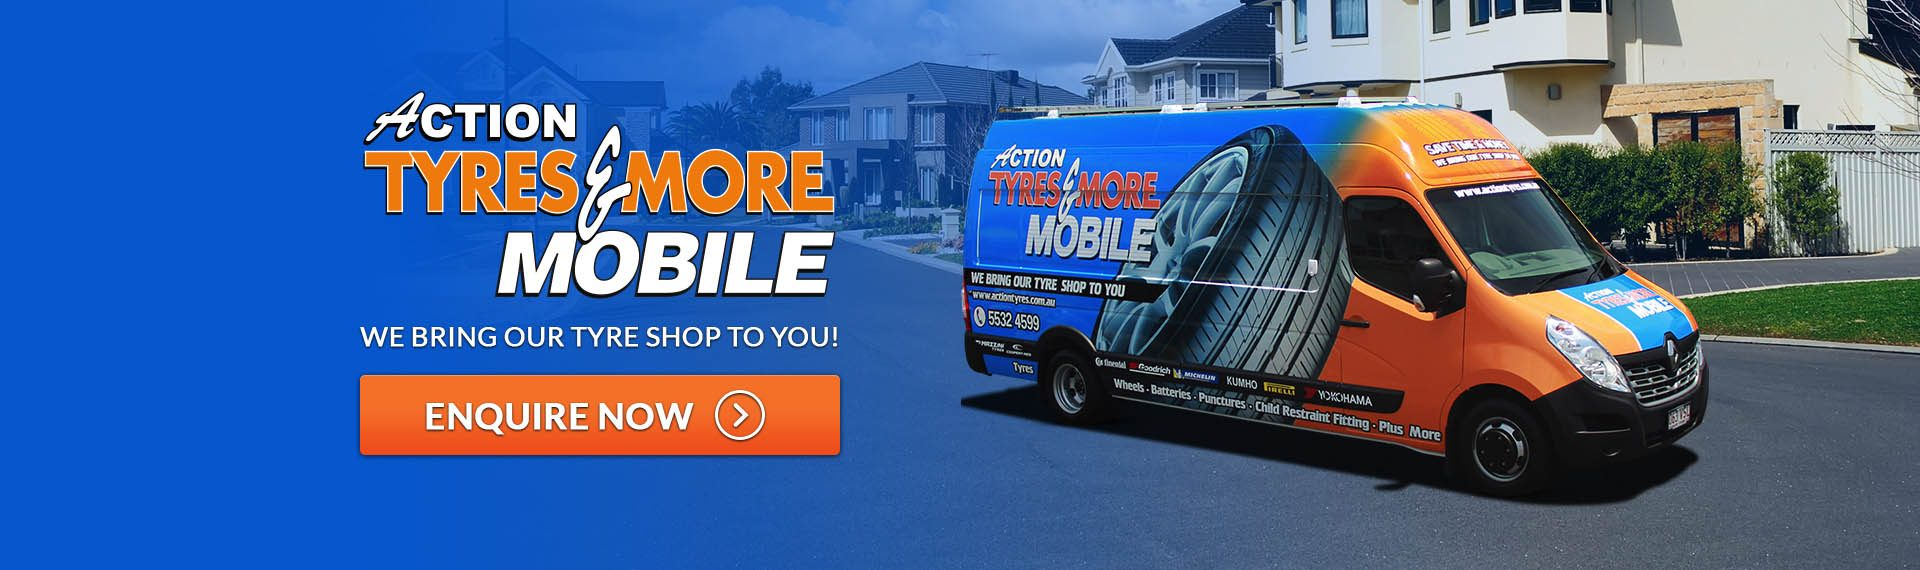 Action Tyres & More Mobile - We Bring Our Tyre Shop to you!